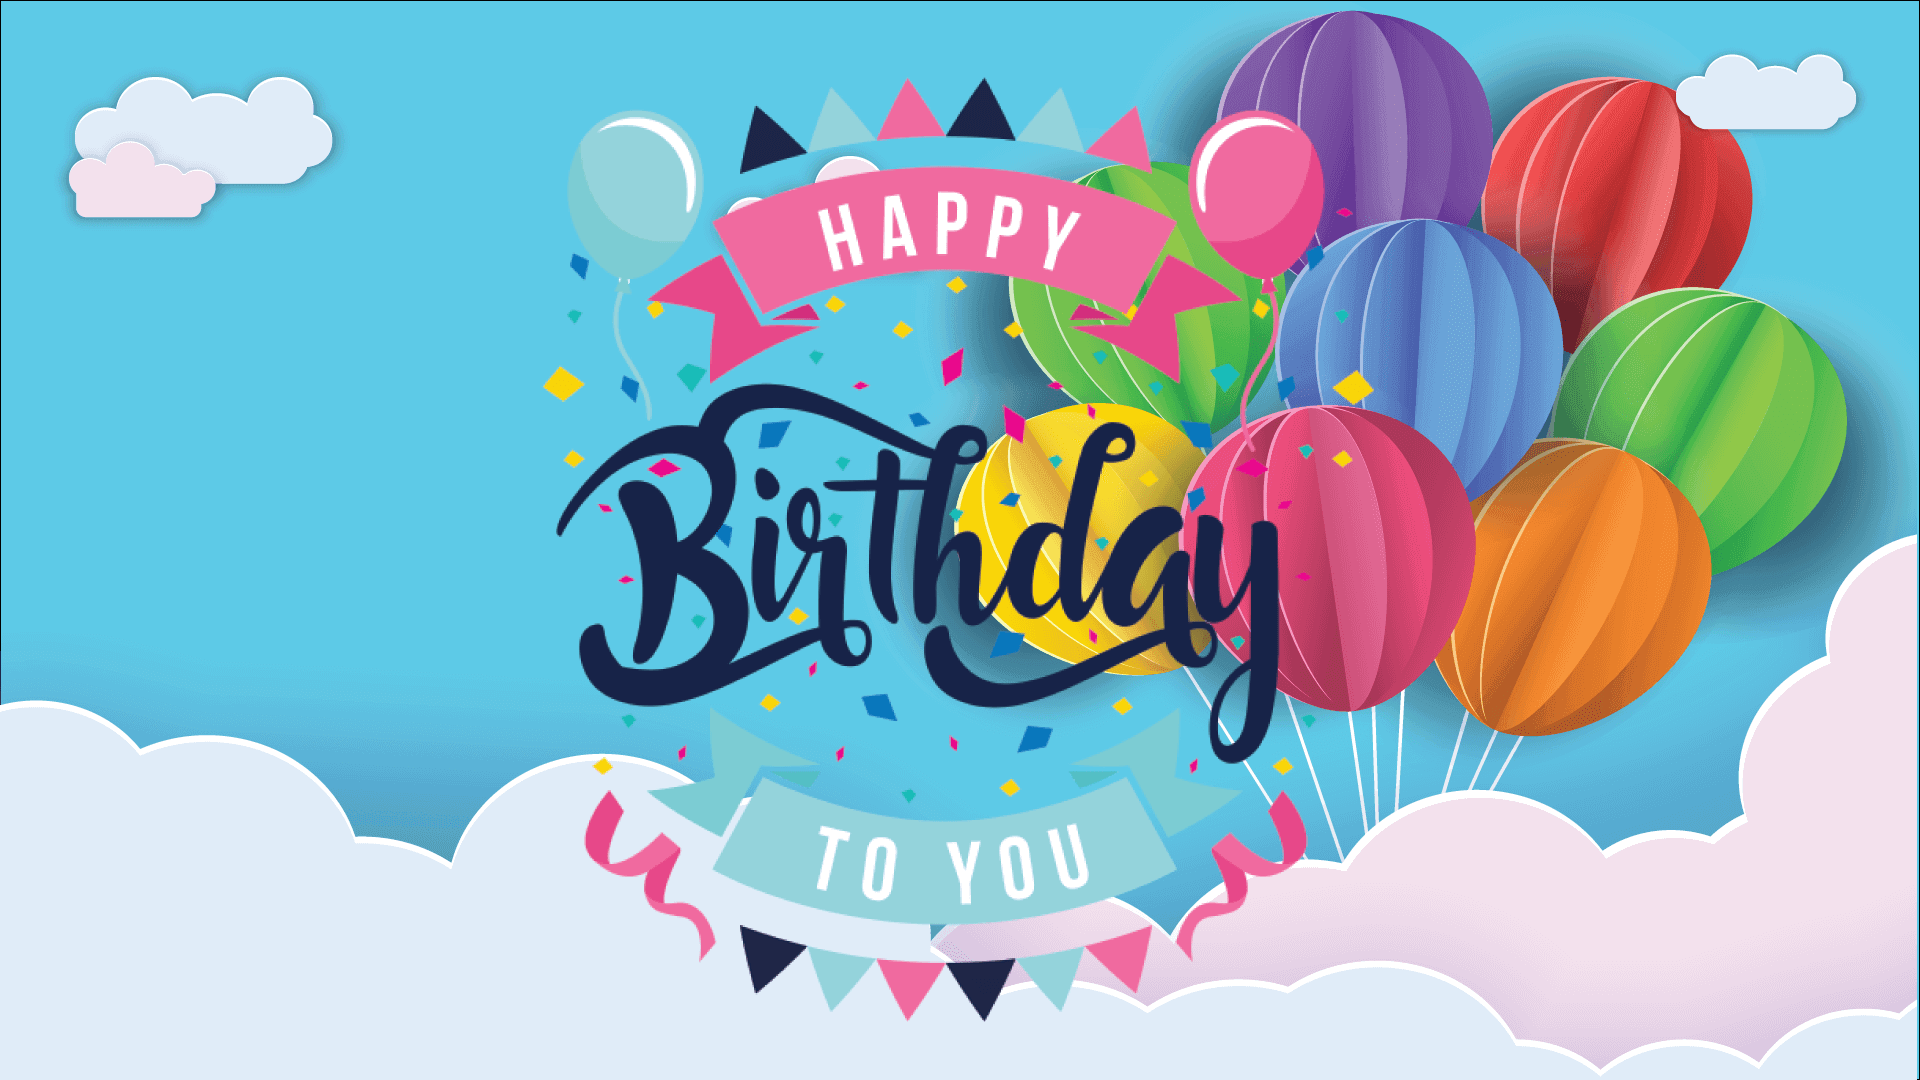 Birthday ecards and online greeting cards